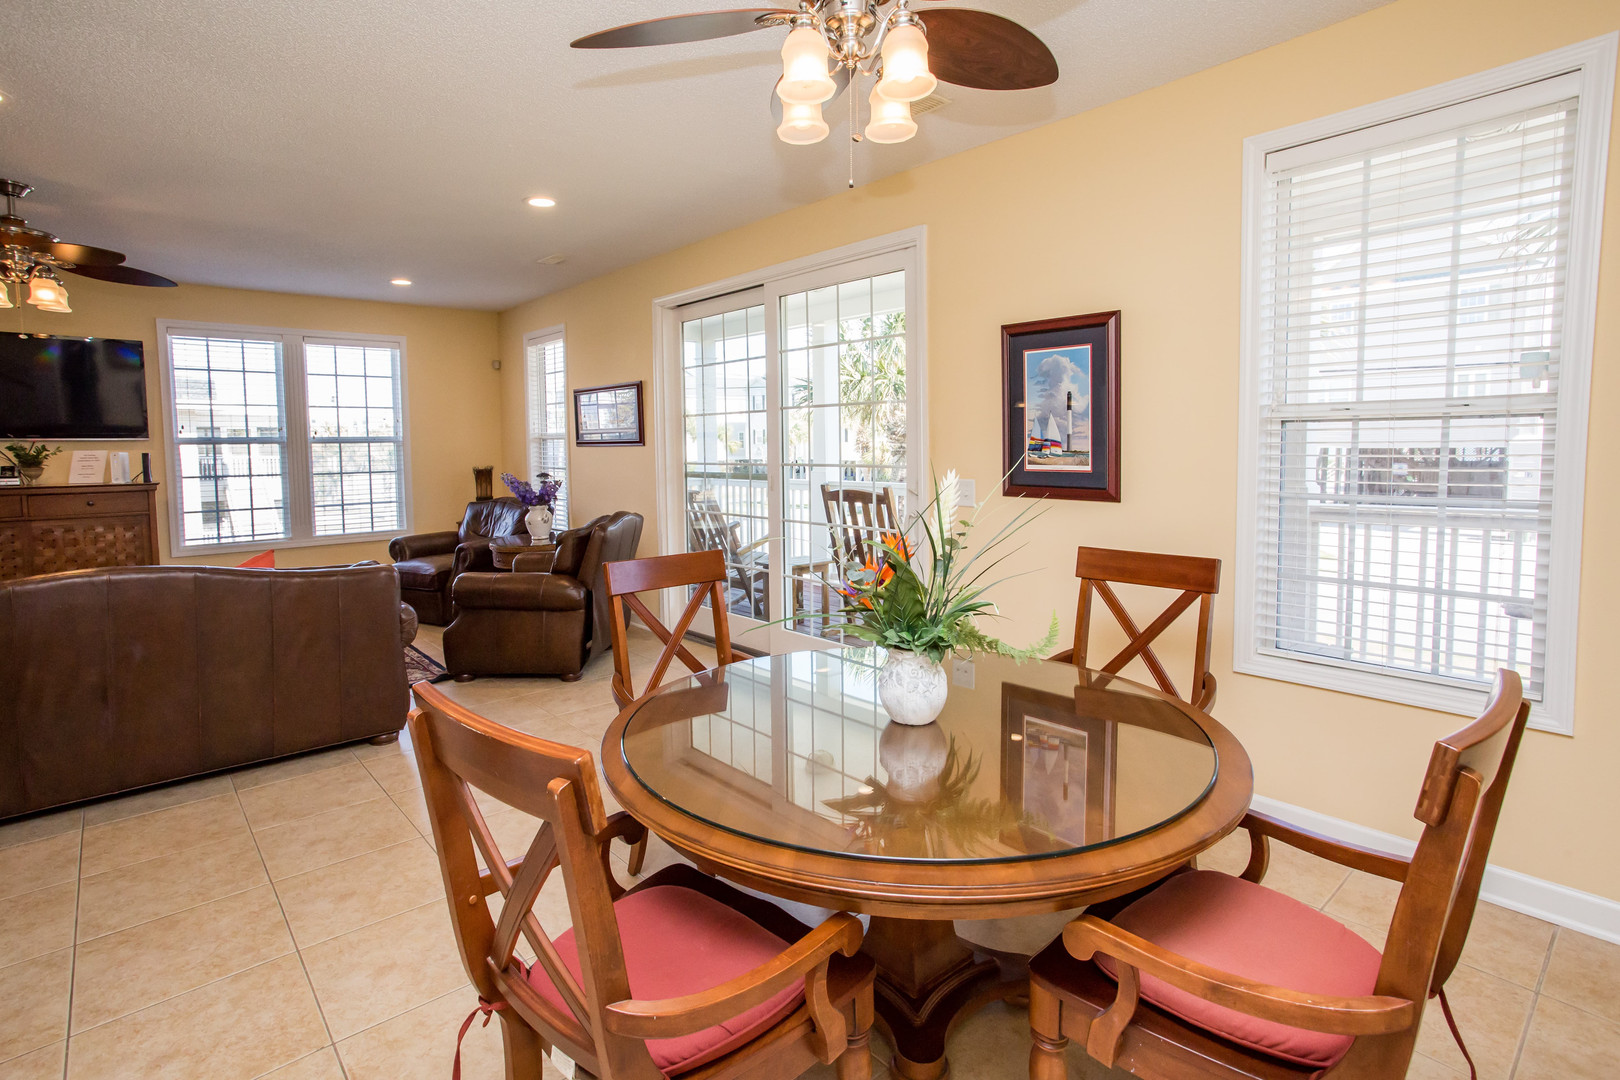 13 Flam Dining Nook